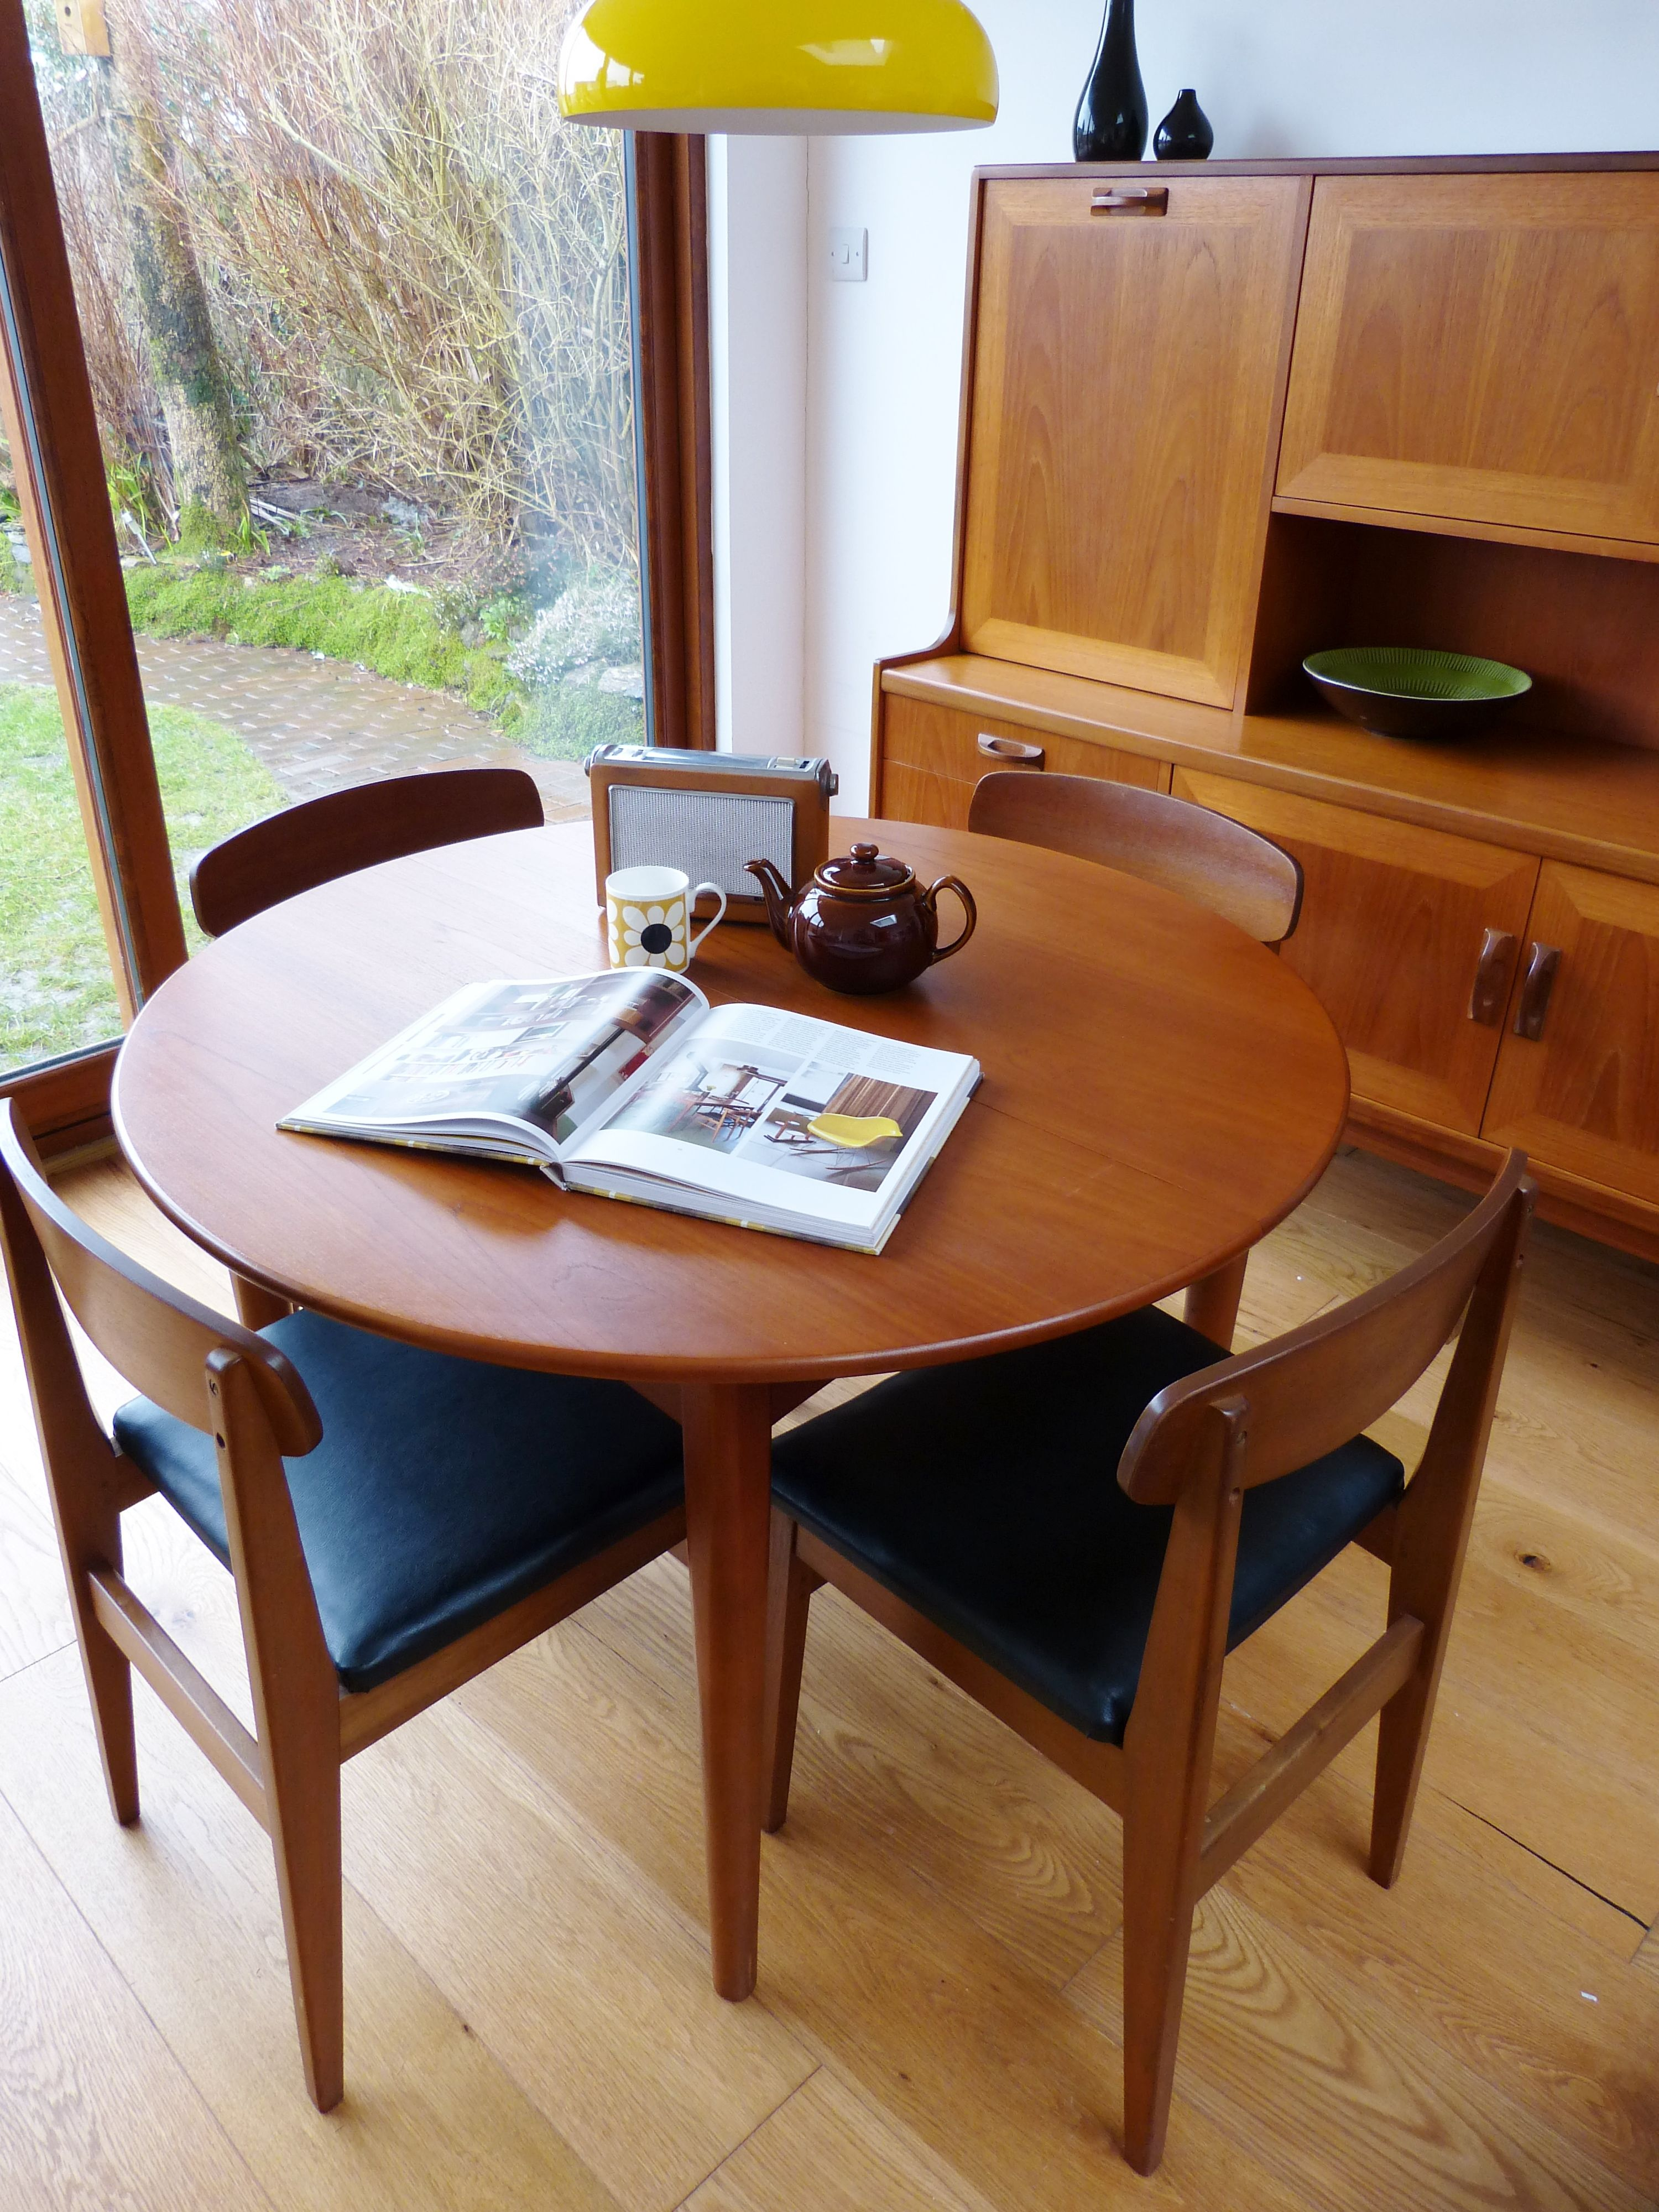 Retro Beautility teak dining table and chairs with G Plan sideboard. & Retro Beautility teak dining table and chairs with G Plan sideboard ...